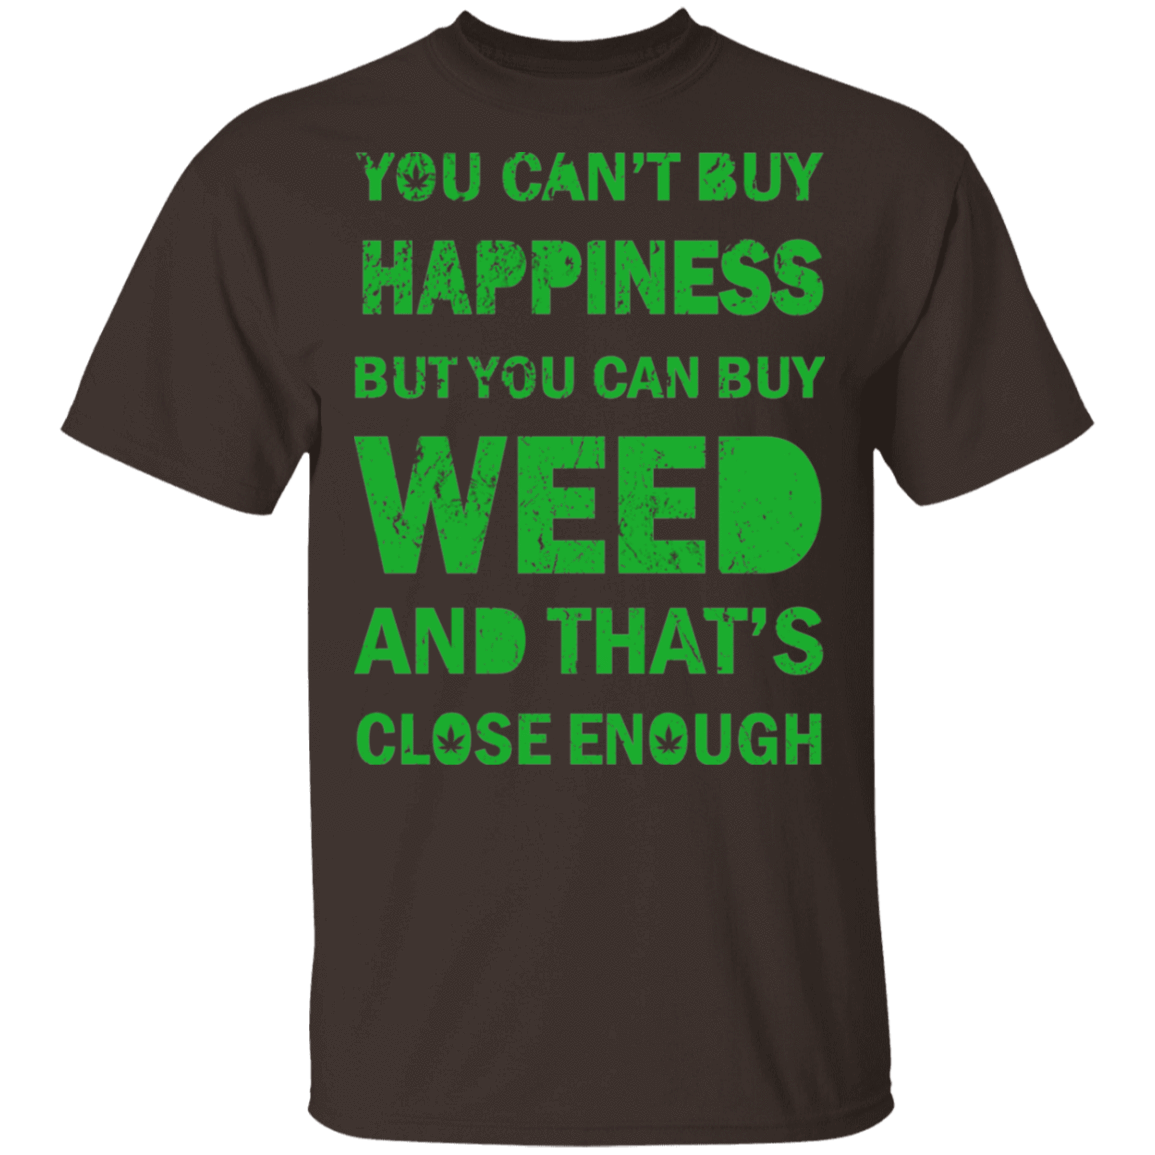 You Can't Buy Happiness But You Can Buy Weed And That's Close Enough T-Shirts, Hoodies, Tank 22-2283-79335577-12087 - Tee Ript